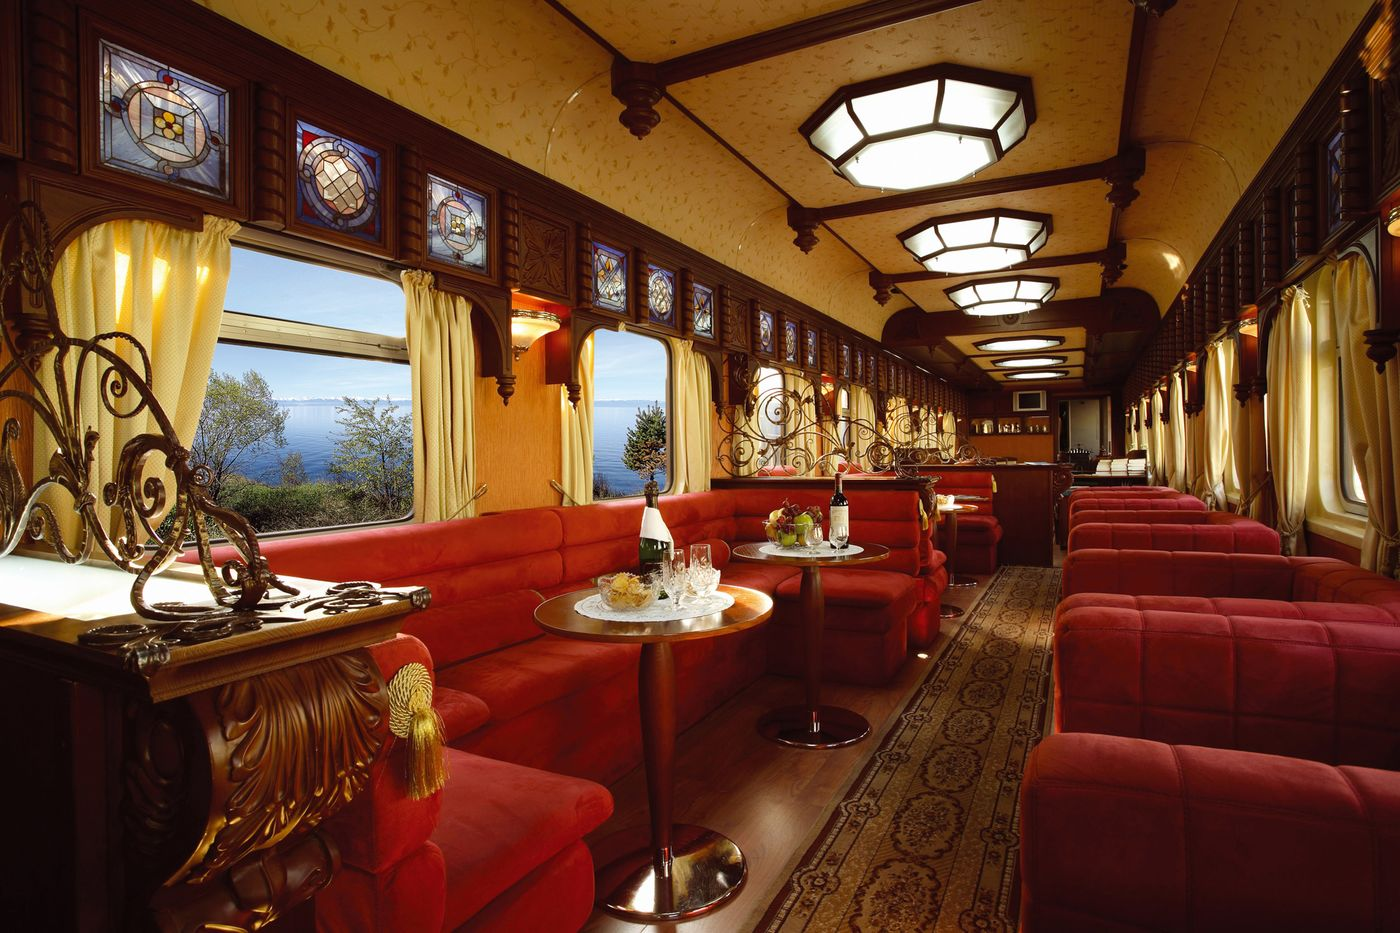 The Golden Eagle Trans-Siberian Express. The Rail Car Restaurant.